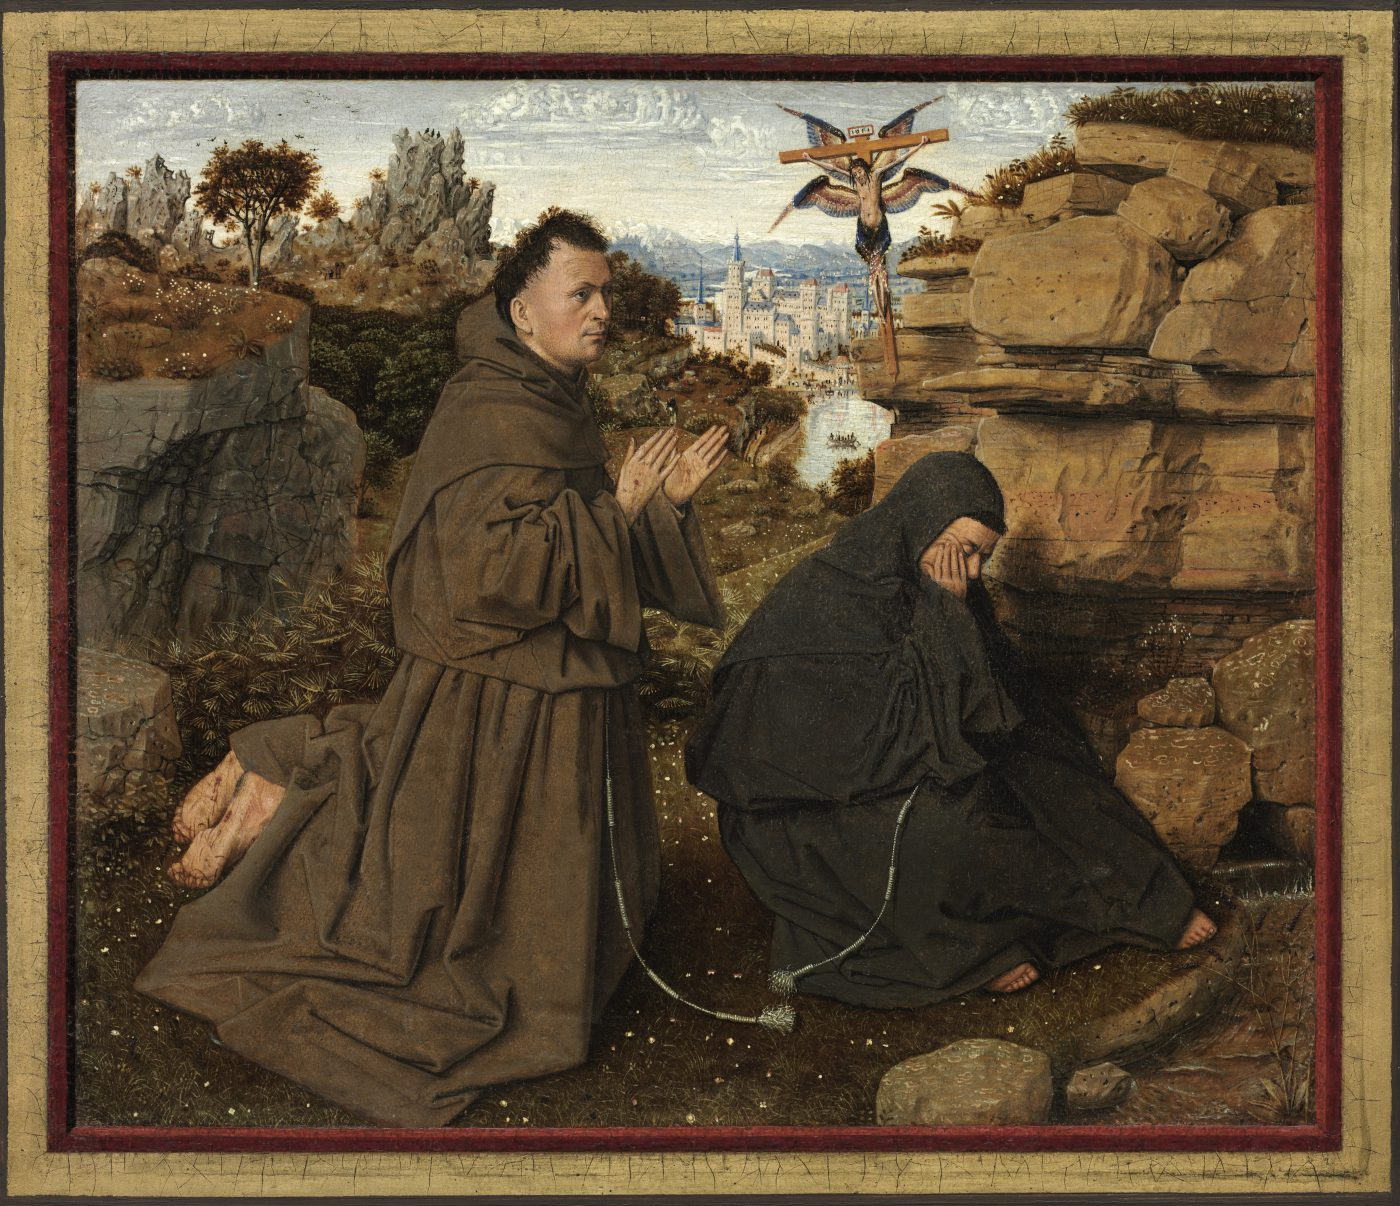 Jan van Eyck, Die Stigmatisierung des hl. Franziskus, ca. 1430 - 1432 (Philadelphia Museum of Art, John G. Johnson Collection, 1917, Courtesy of the Philadelphia Museum of Art)